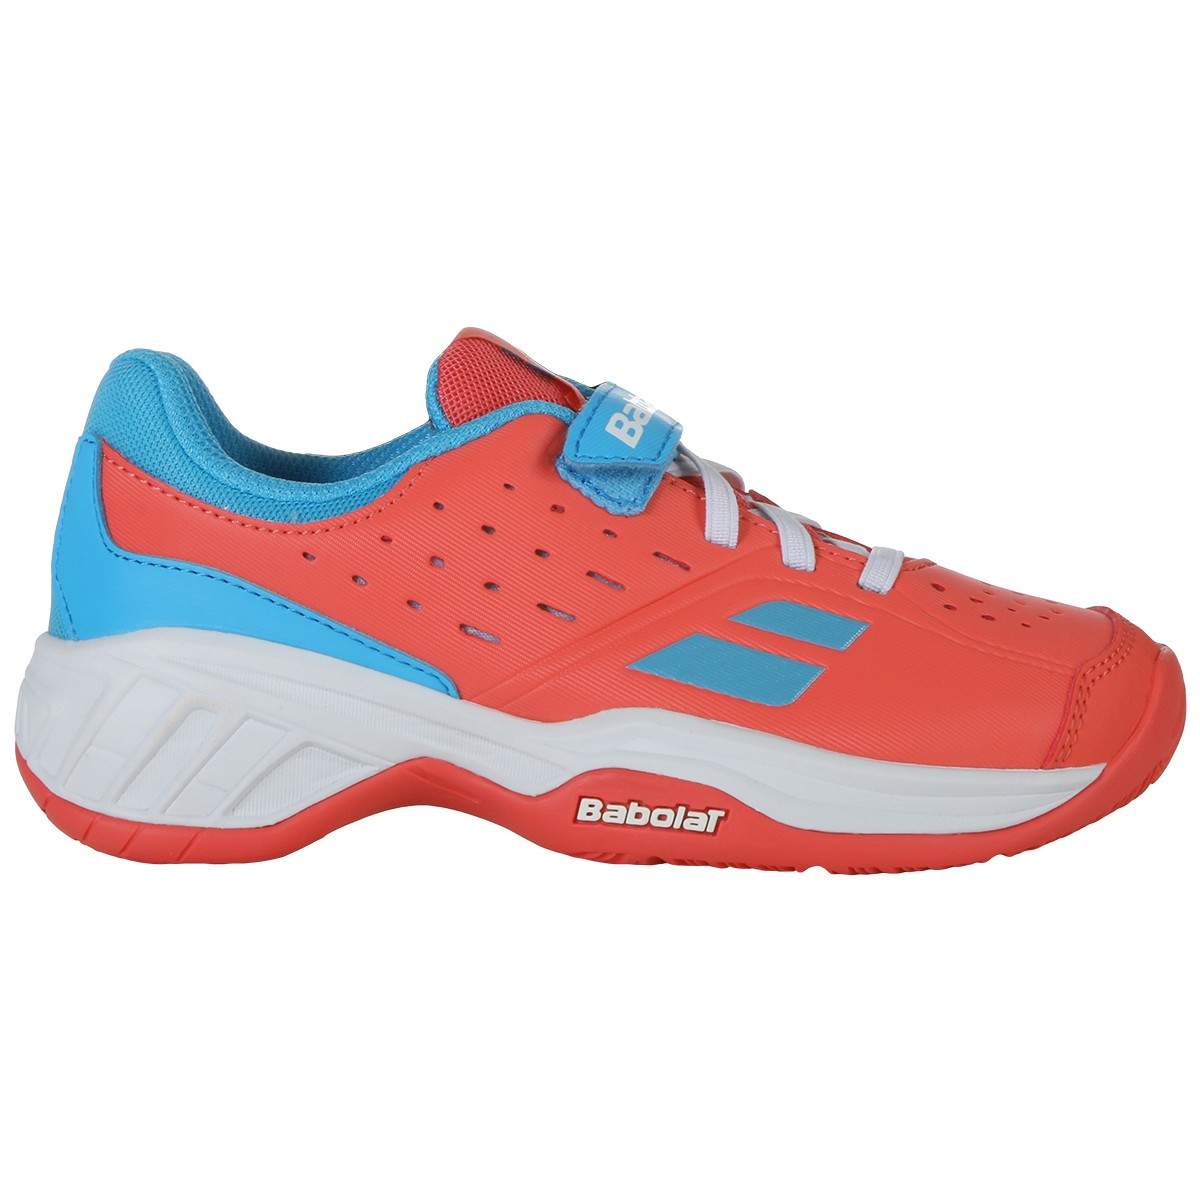 CHAUSSURES BABOLAT JUNIOR PULSION KID TOUTES SURFACES